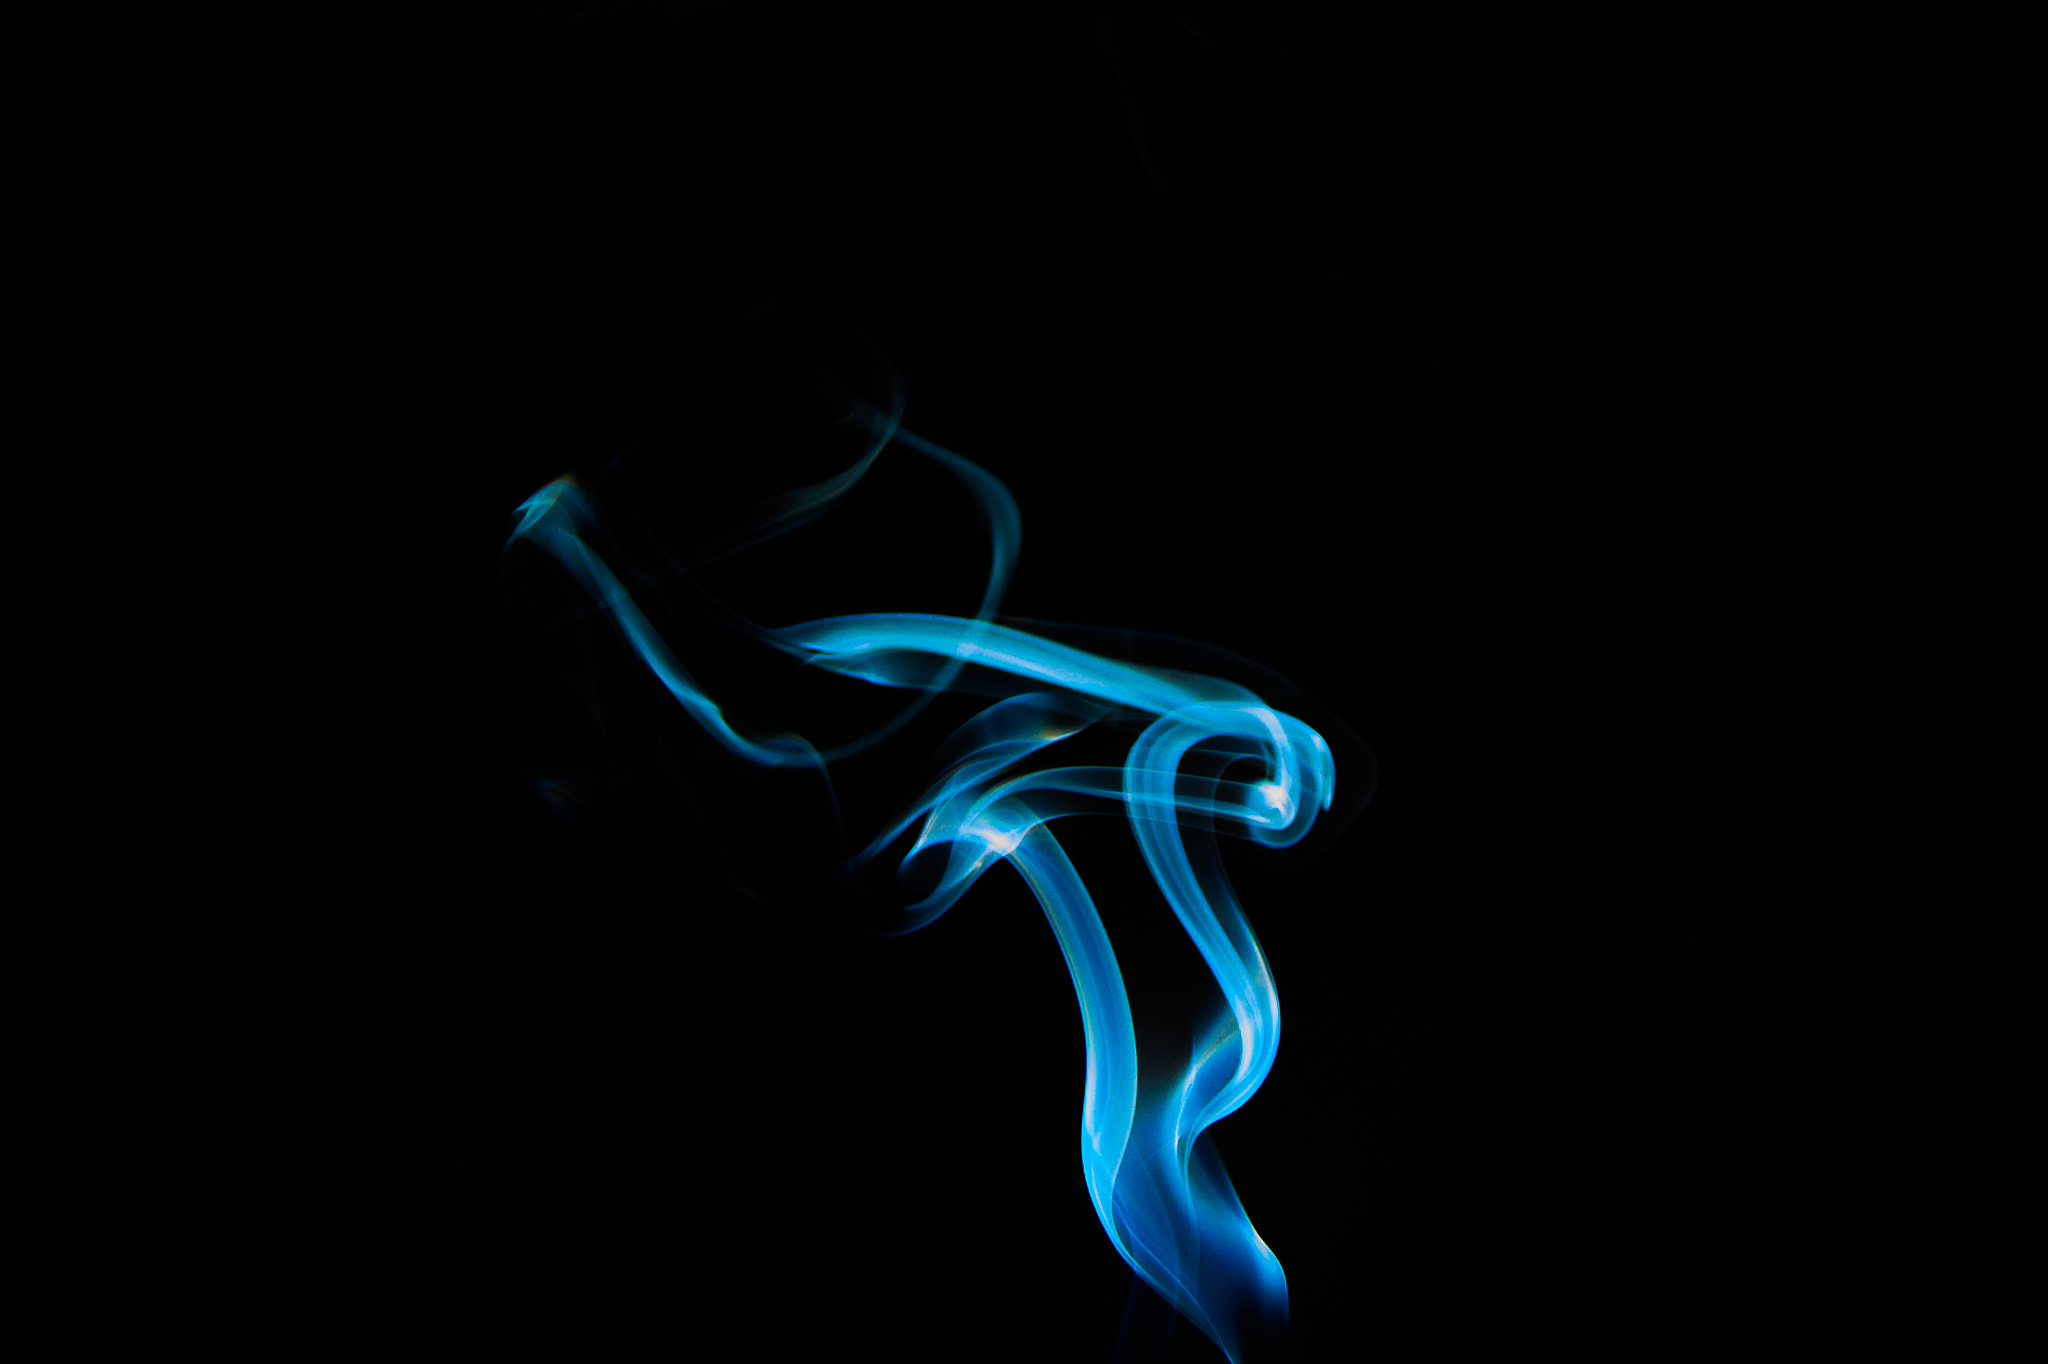 Photograph Blue Smoke by Salvatore Grigoli on 500px